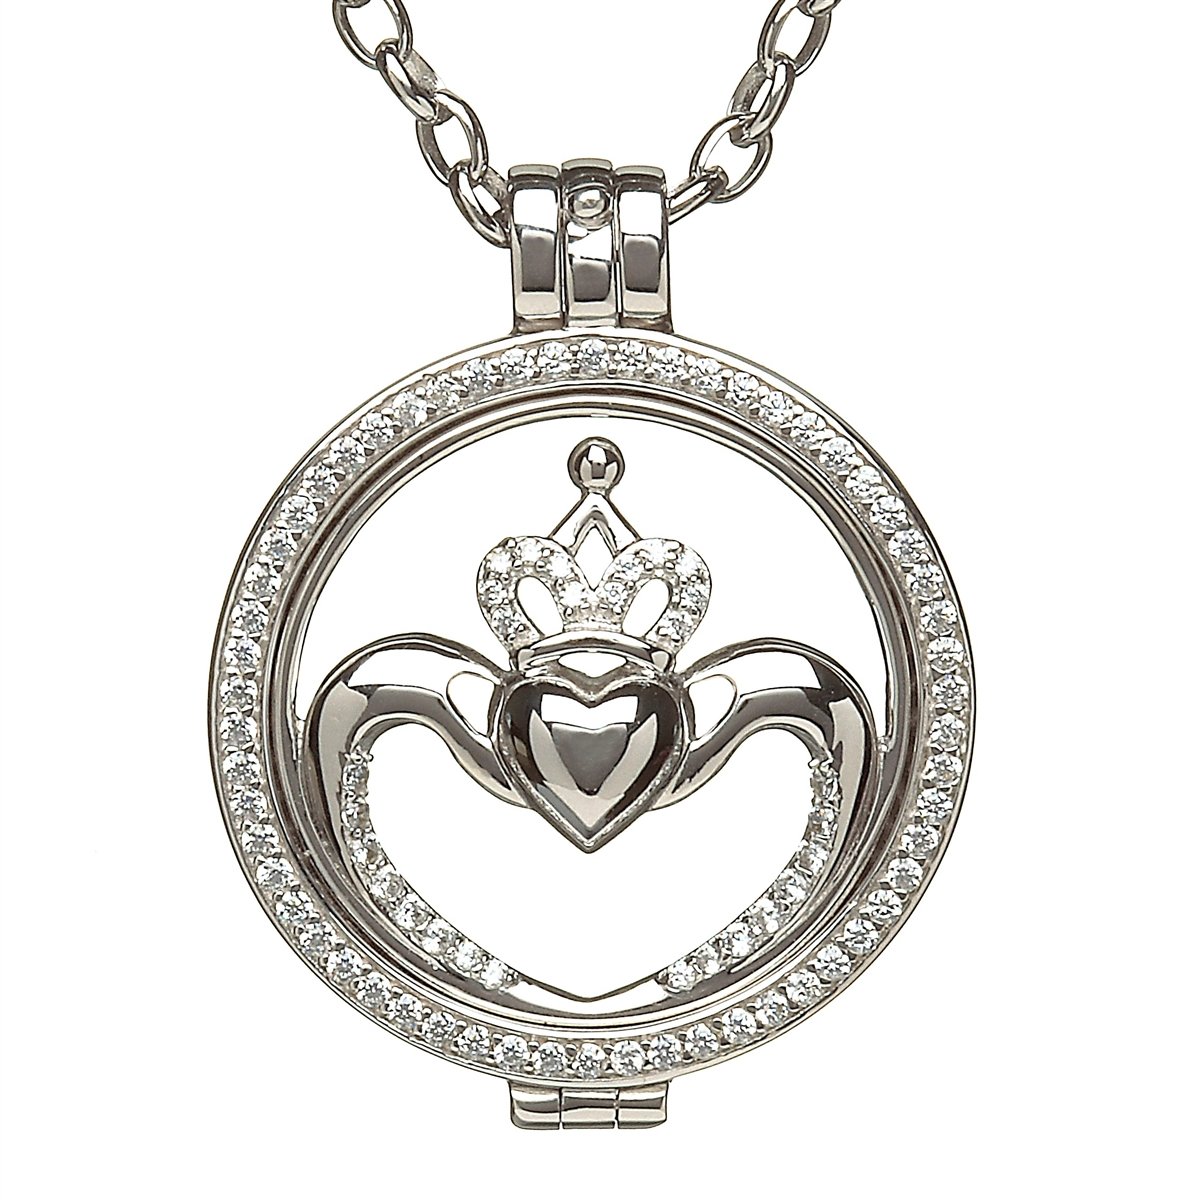 with love necklaces jewelry irish men item real from in cross gift platinum women religious pendant gold necklace claddagh plated crown color